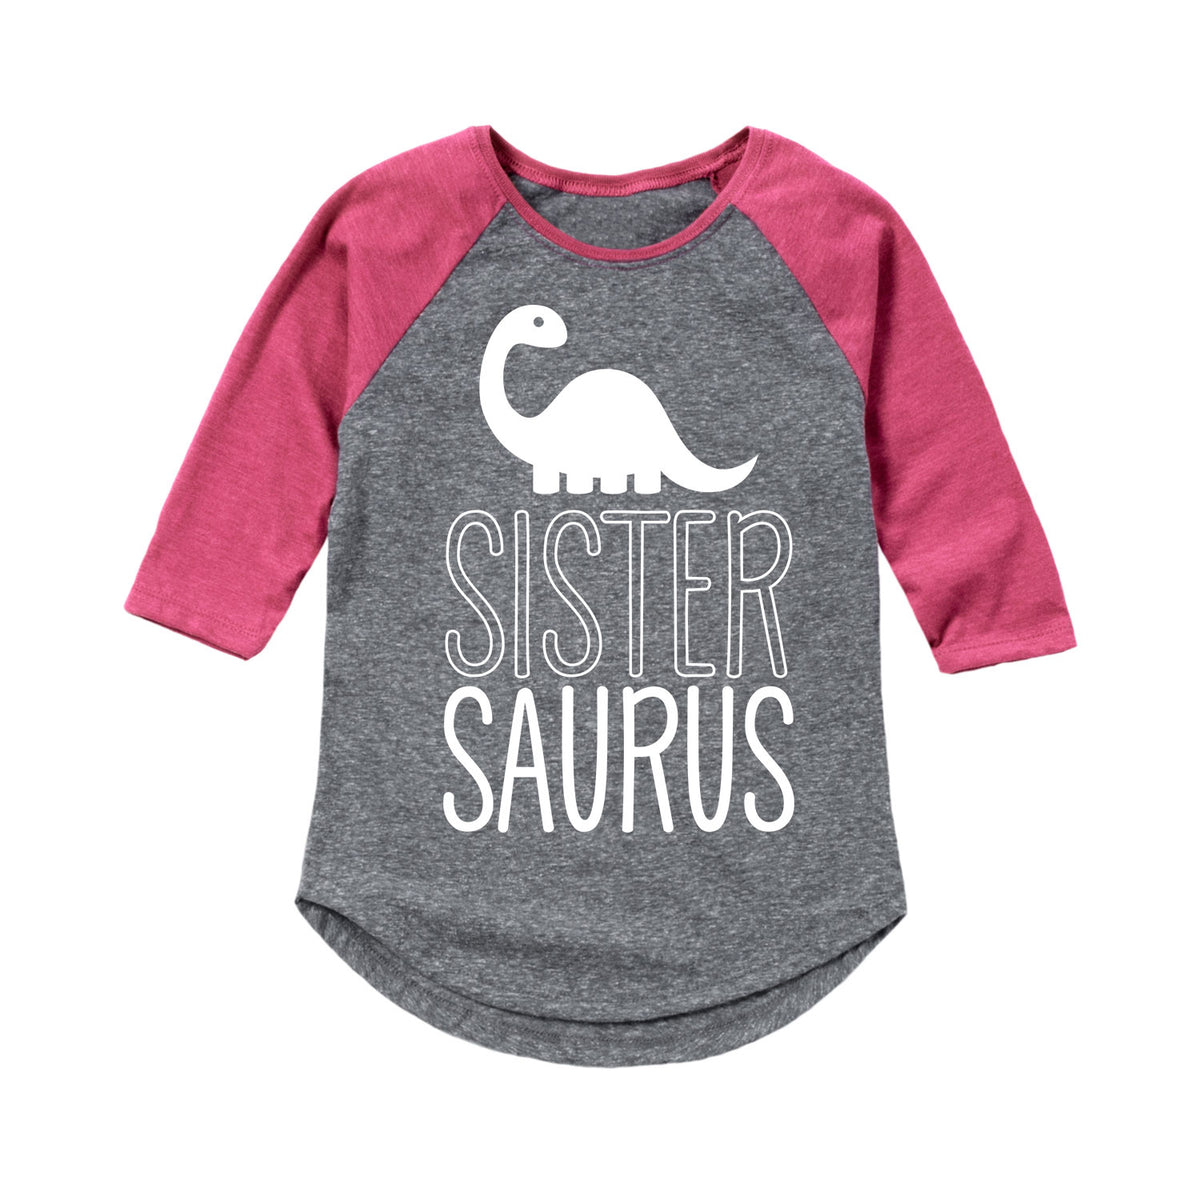 Sistersaurus - Toddler Girl Raglan